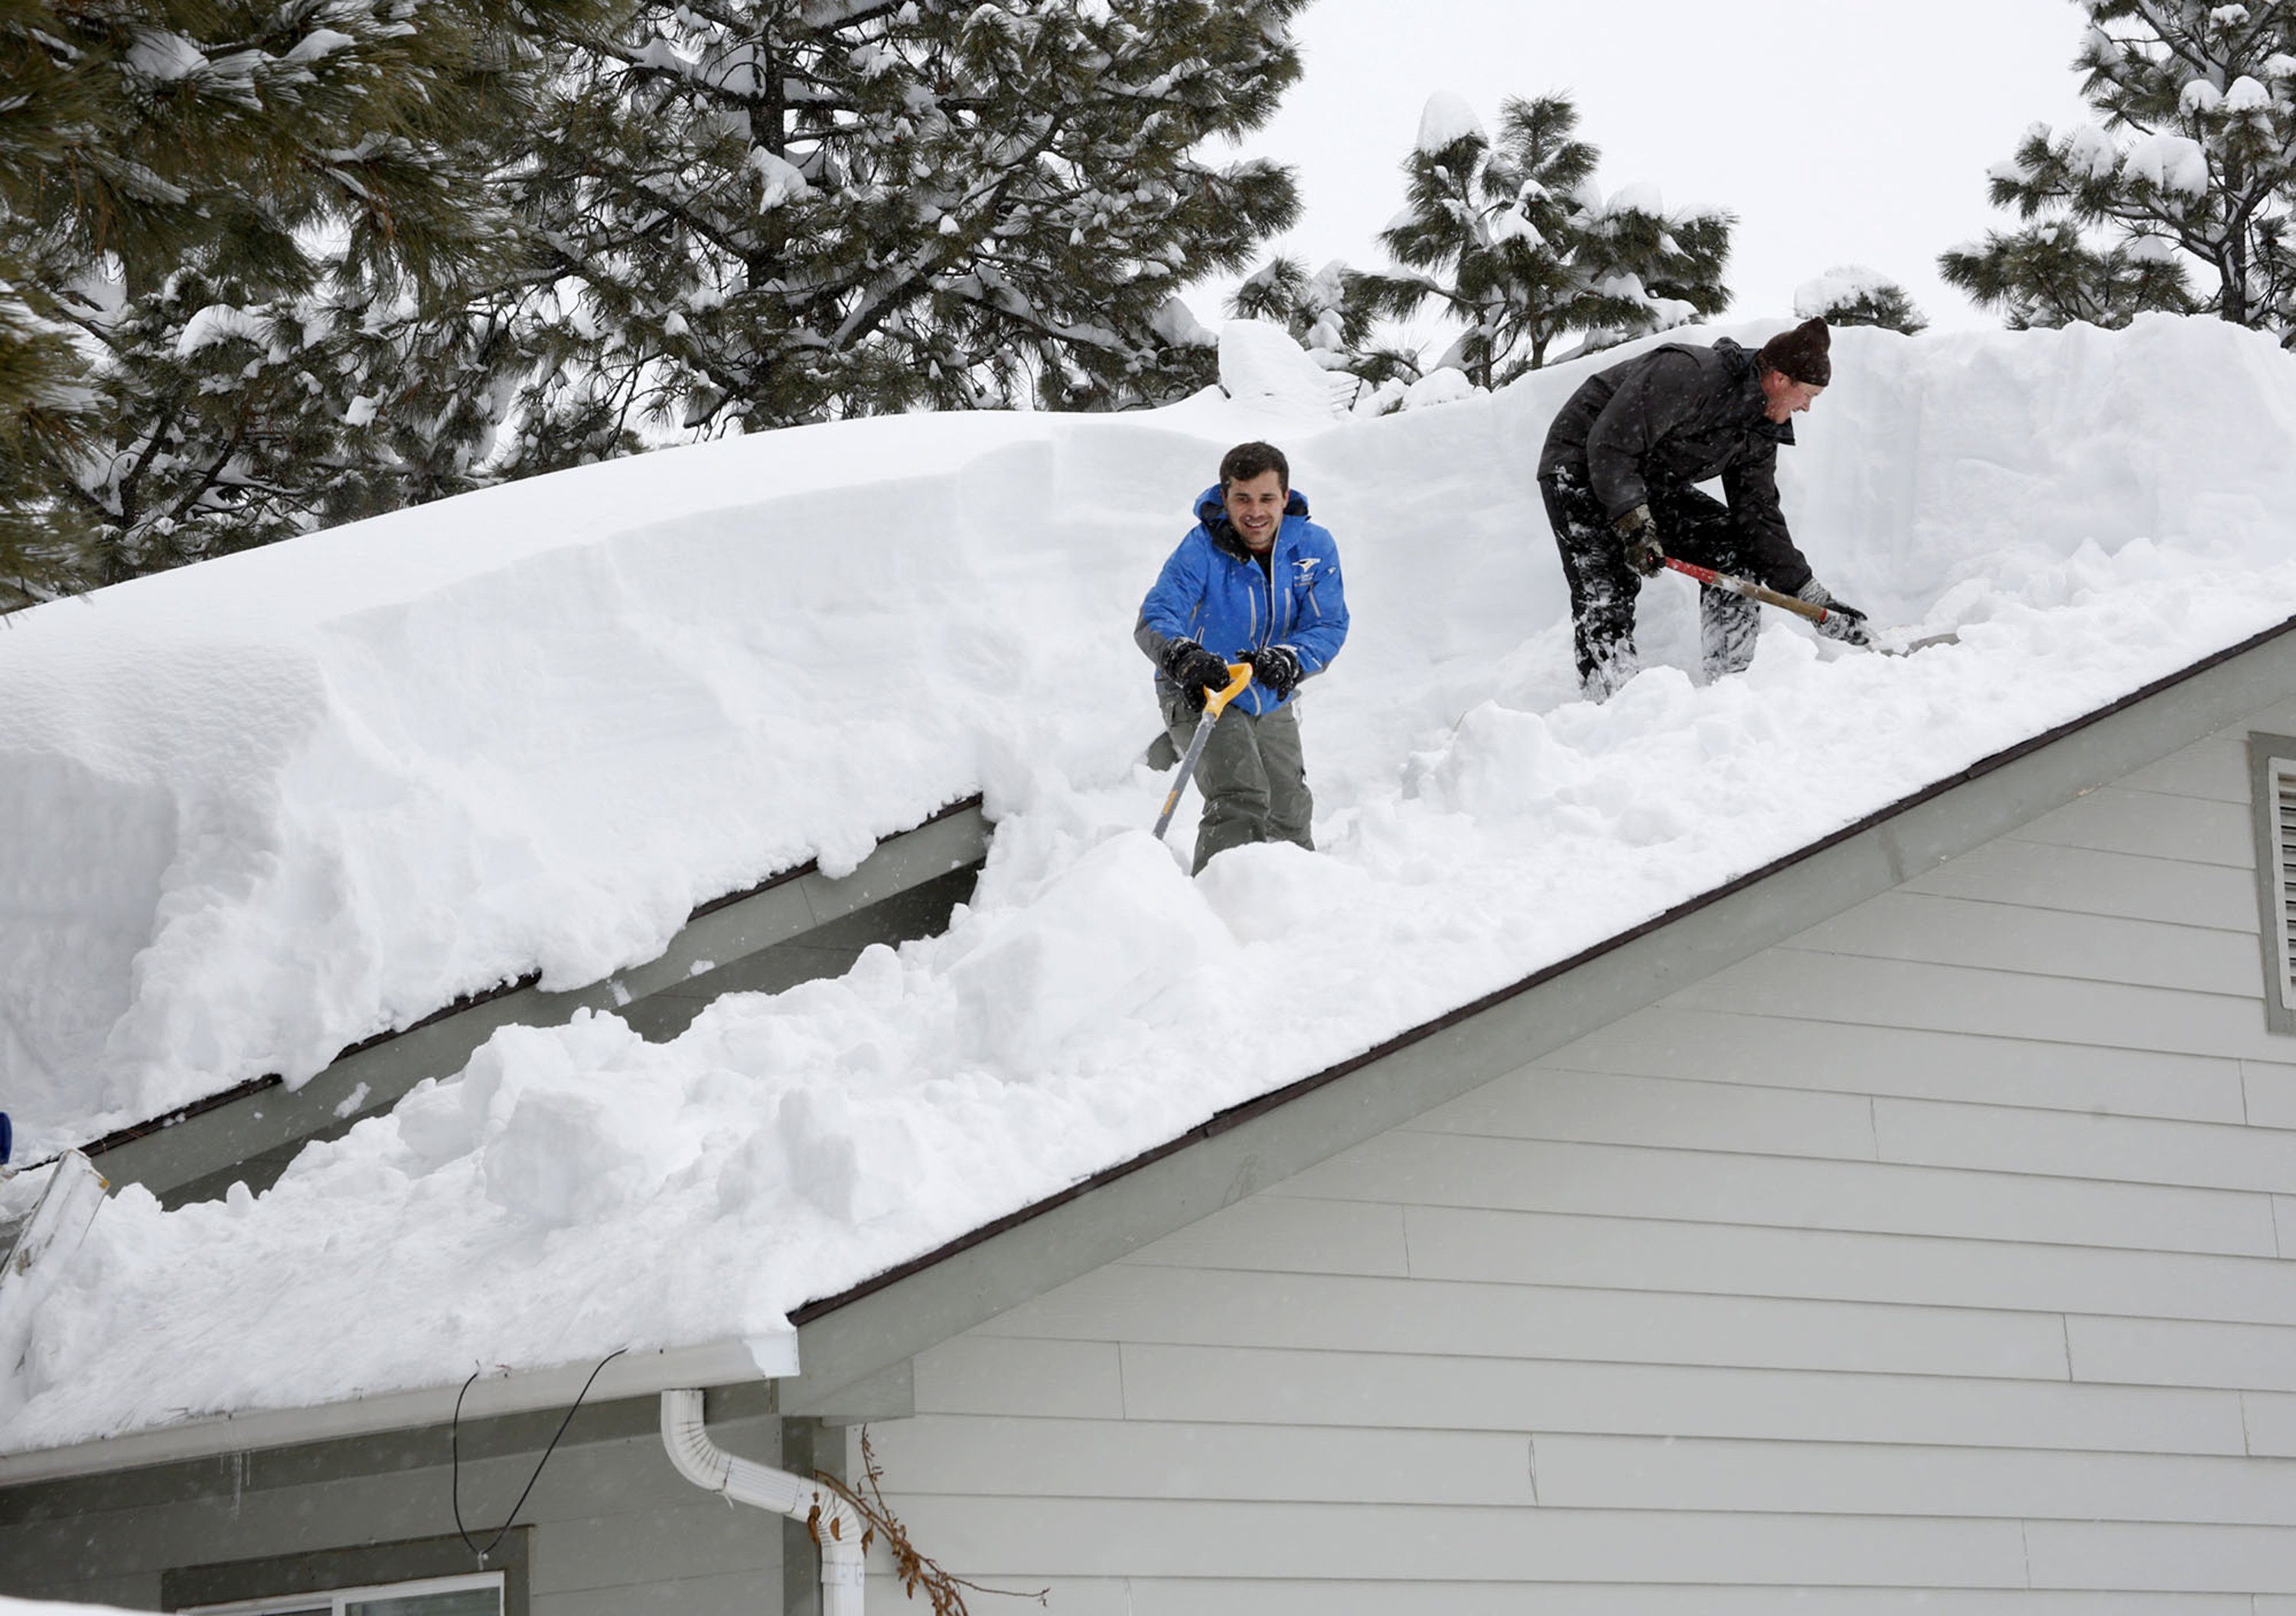 Storm dumps record-breaking snow in Arizona on way to Texas